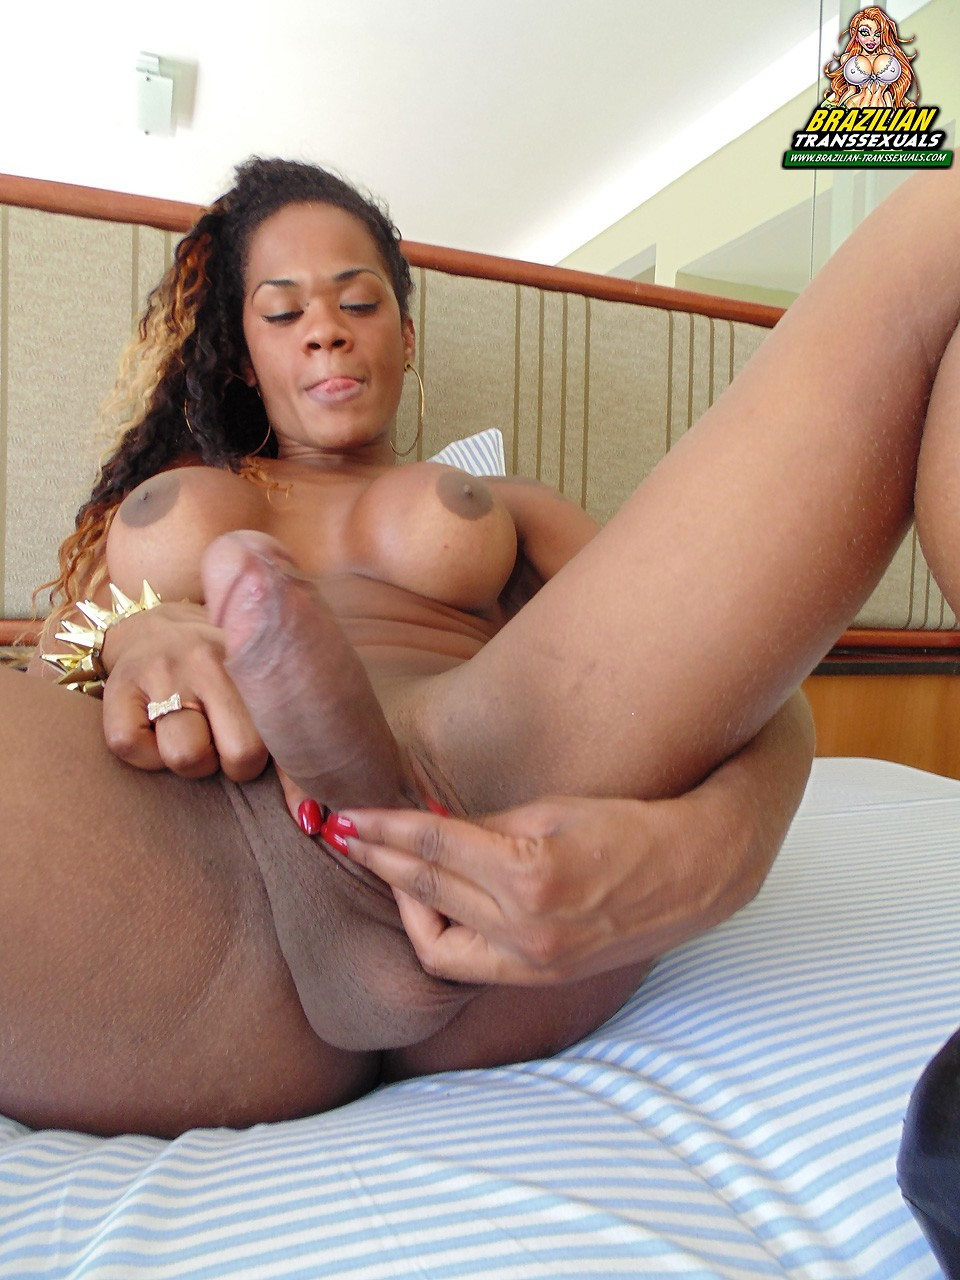 ebony shemale carol dias from brazil posing her big tool